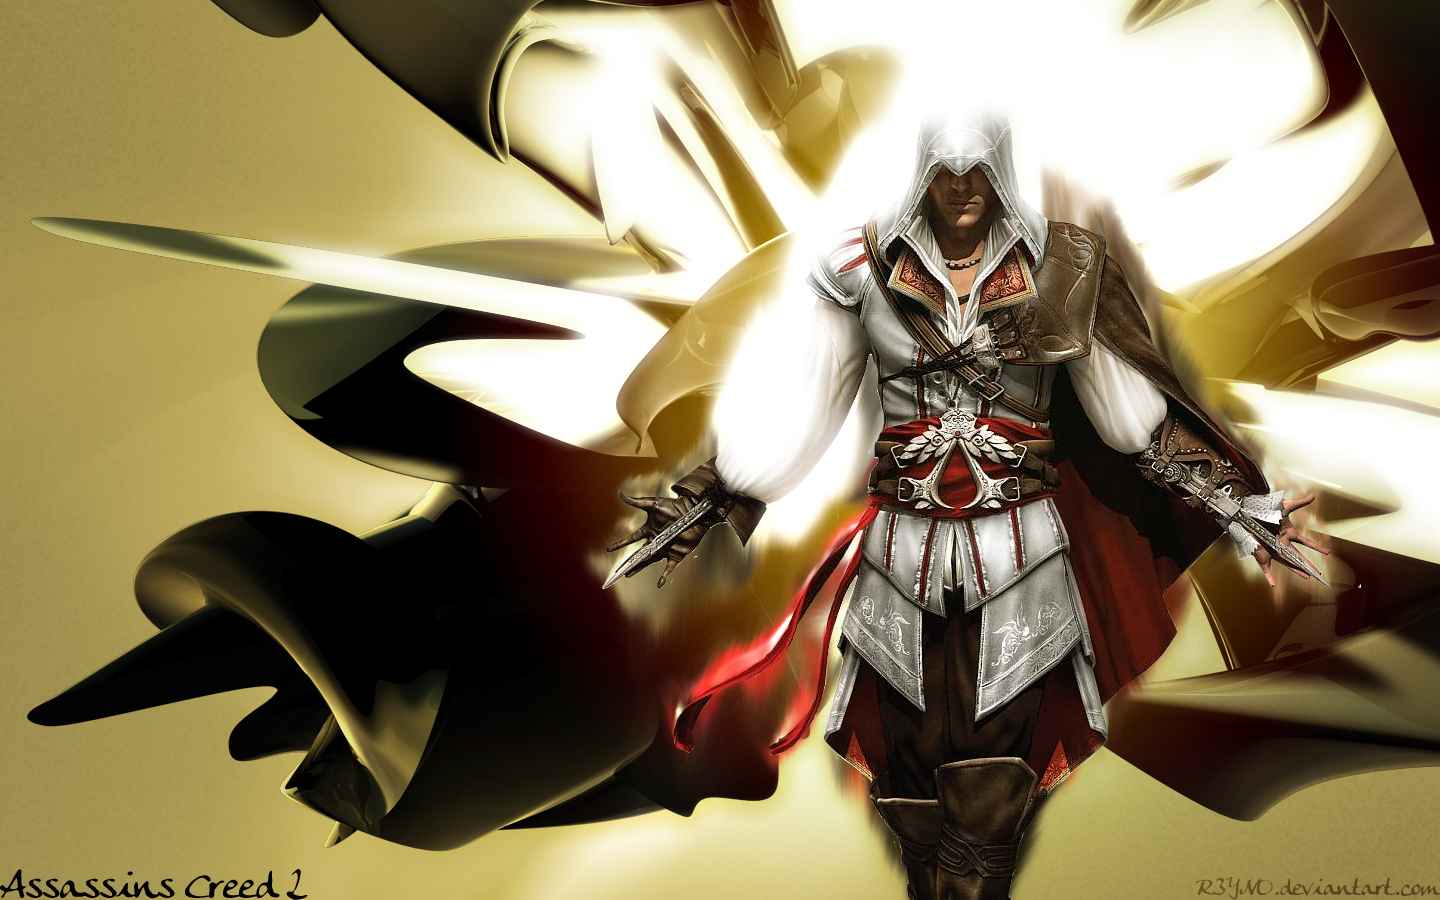 Assassin S Creed Ii Page 15 Of 20 Zerochan Anime Image Board